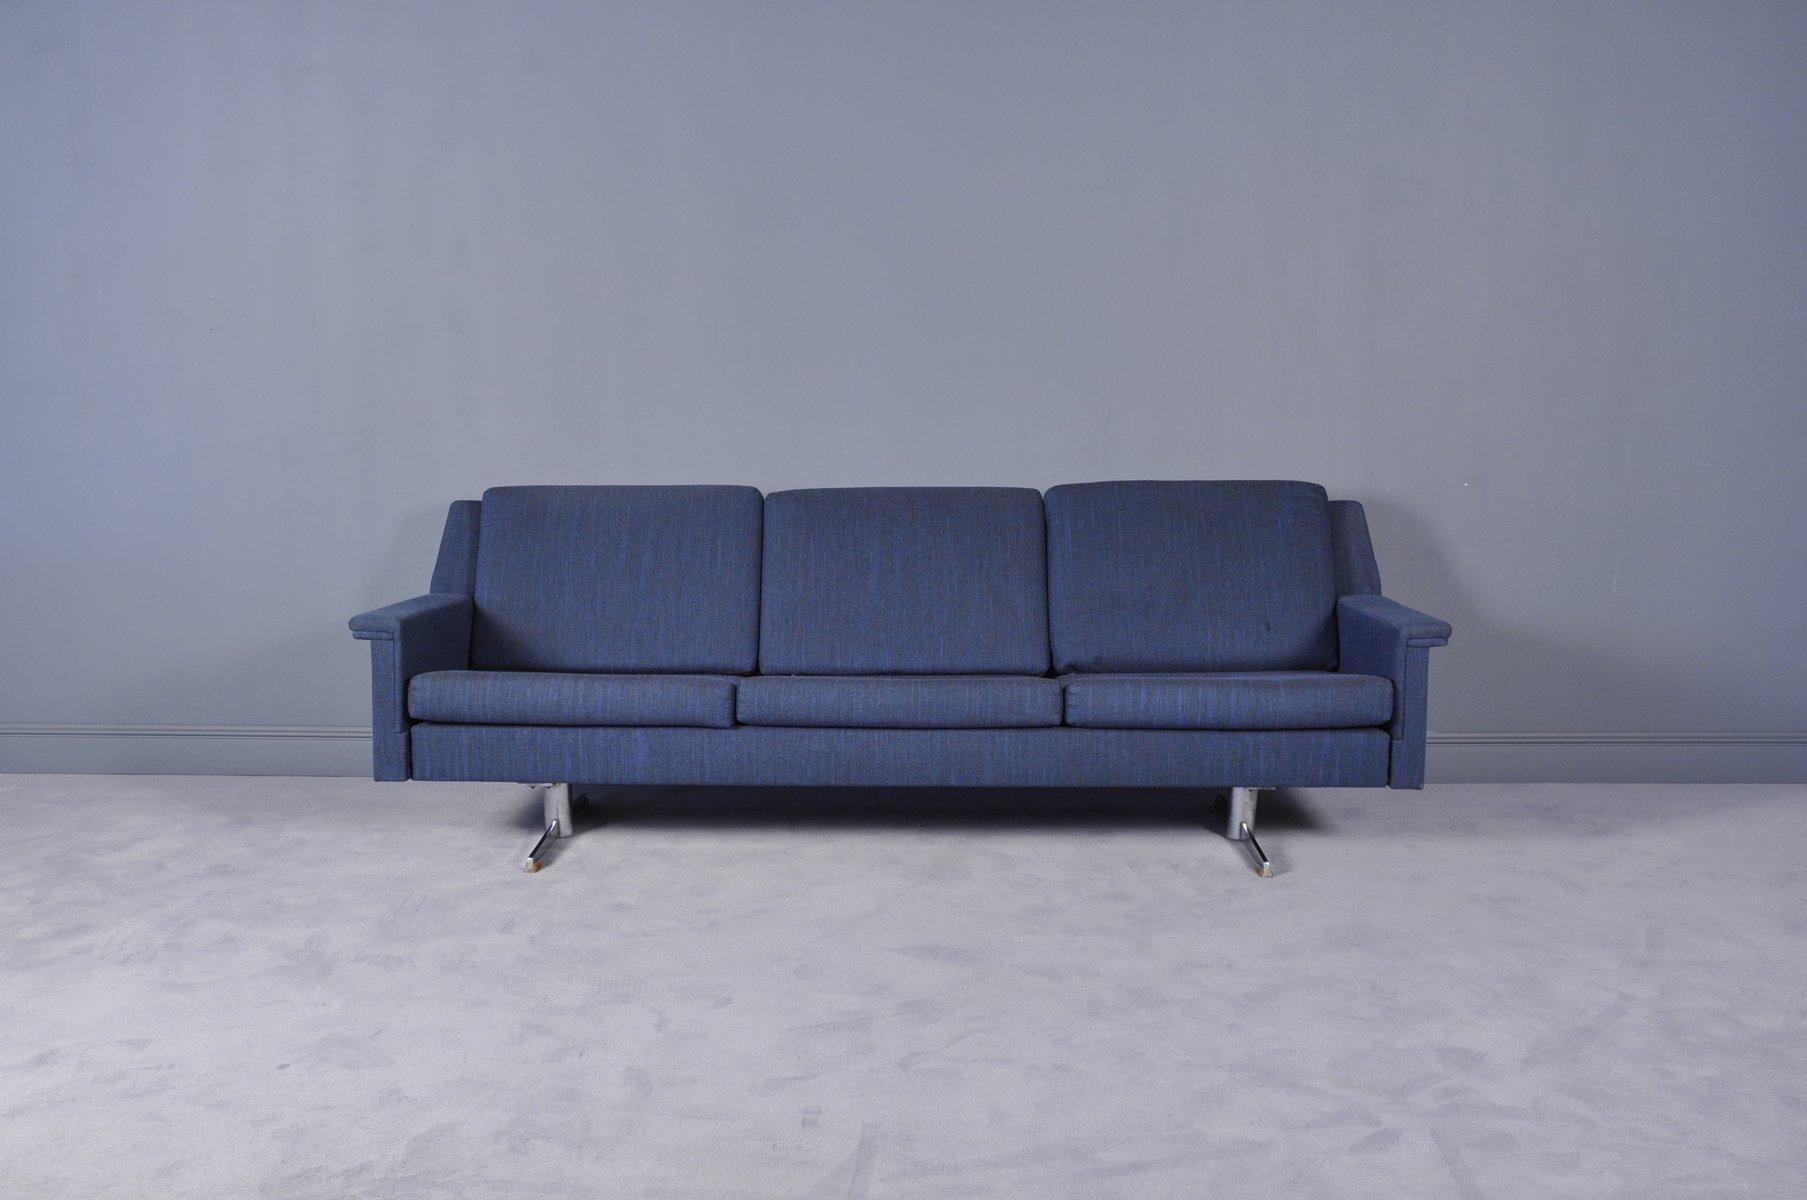 Mid Century Modern Sofa Bed 1970s For Sale At Pamono